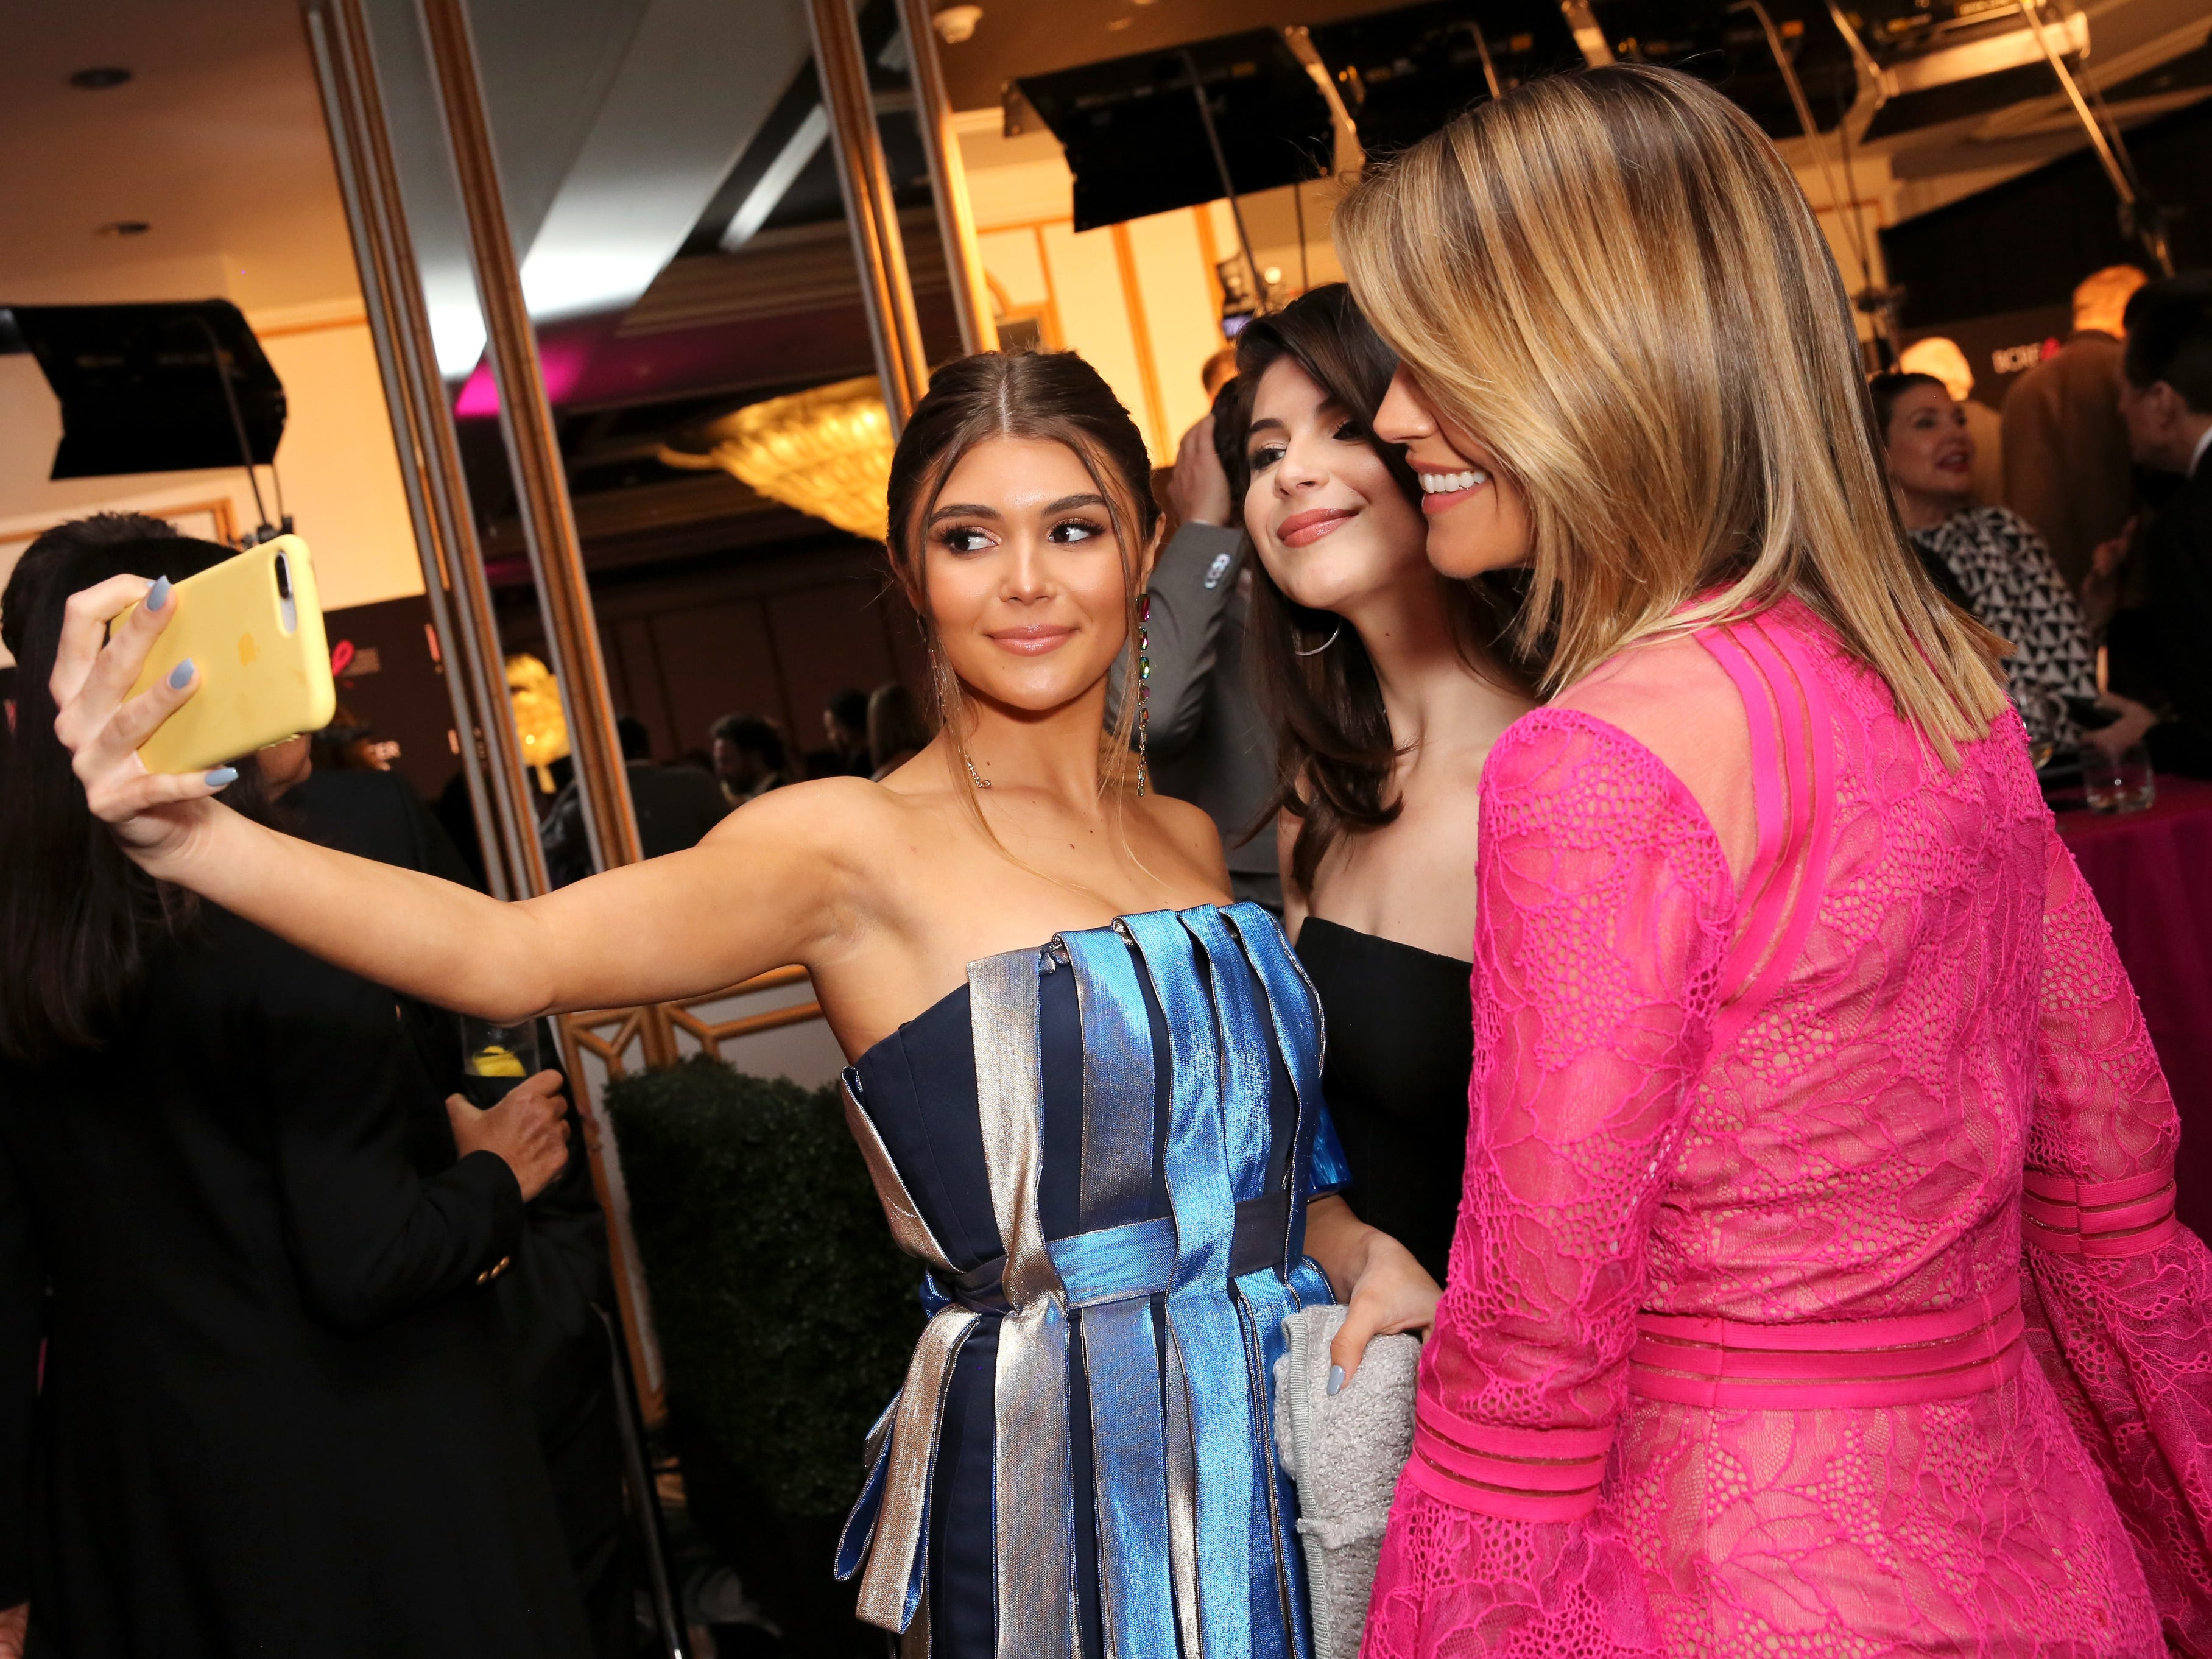 """Olivia Jade Giannulli, left, Isabella Rose Giannulli and Lori Loughlin, right, attend WCRF's """"An Unforgettable Evening"""" at the Beverly Wilshire Four Seasons Hotel on Feb. 28, 2019, in Beverly Hills, Calif."""